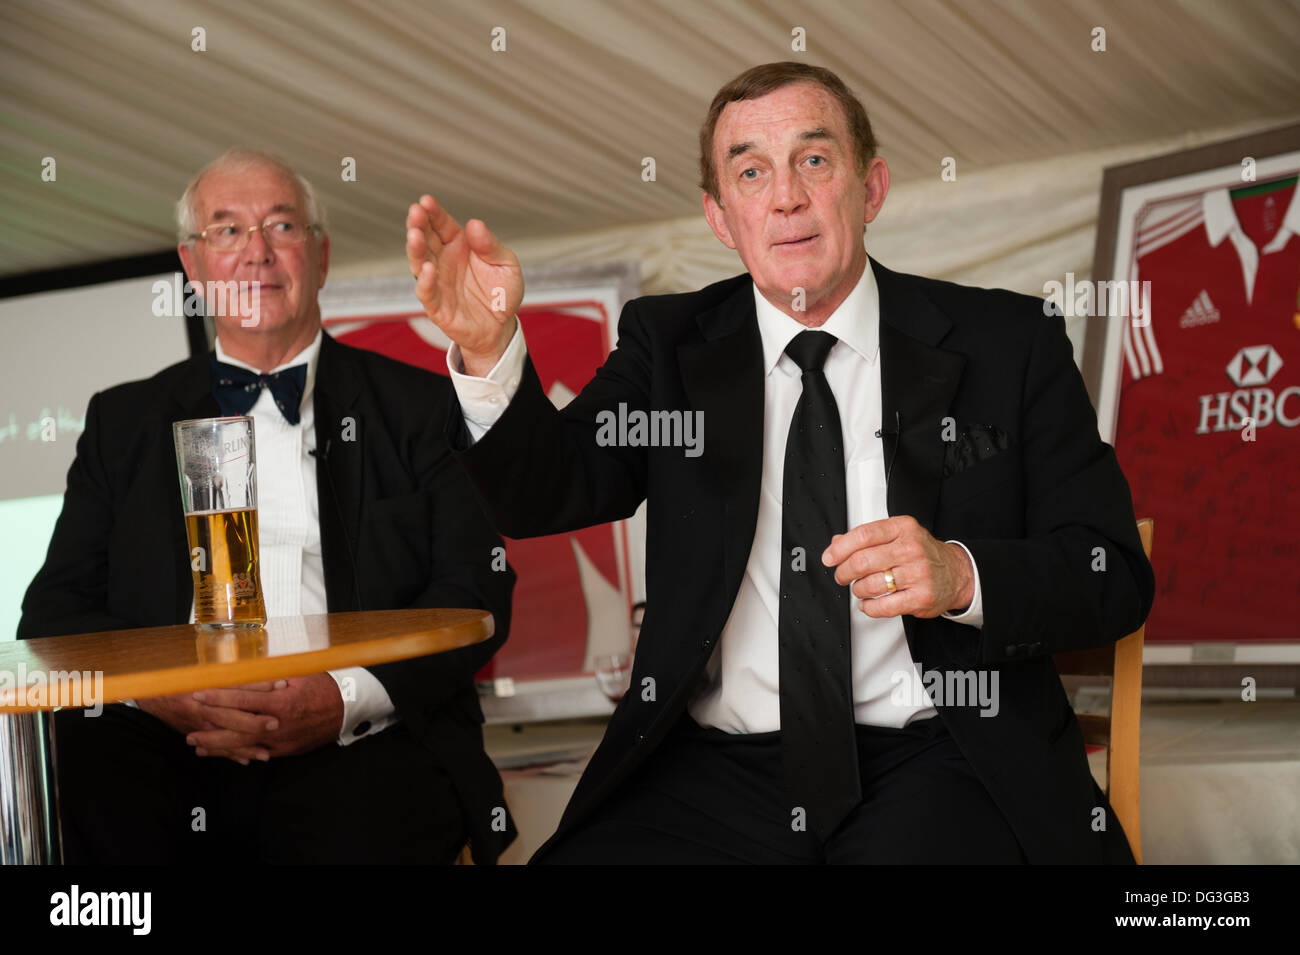 Legendary Wales international rugby players - PHIL BENNETT (speaking) and JOHN DAWES - Stock Image